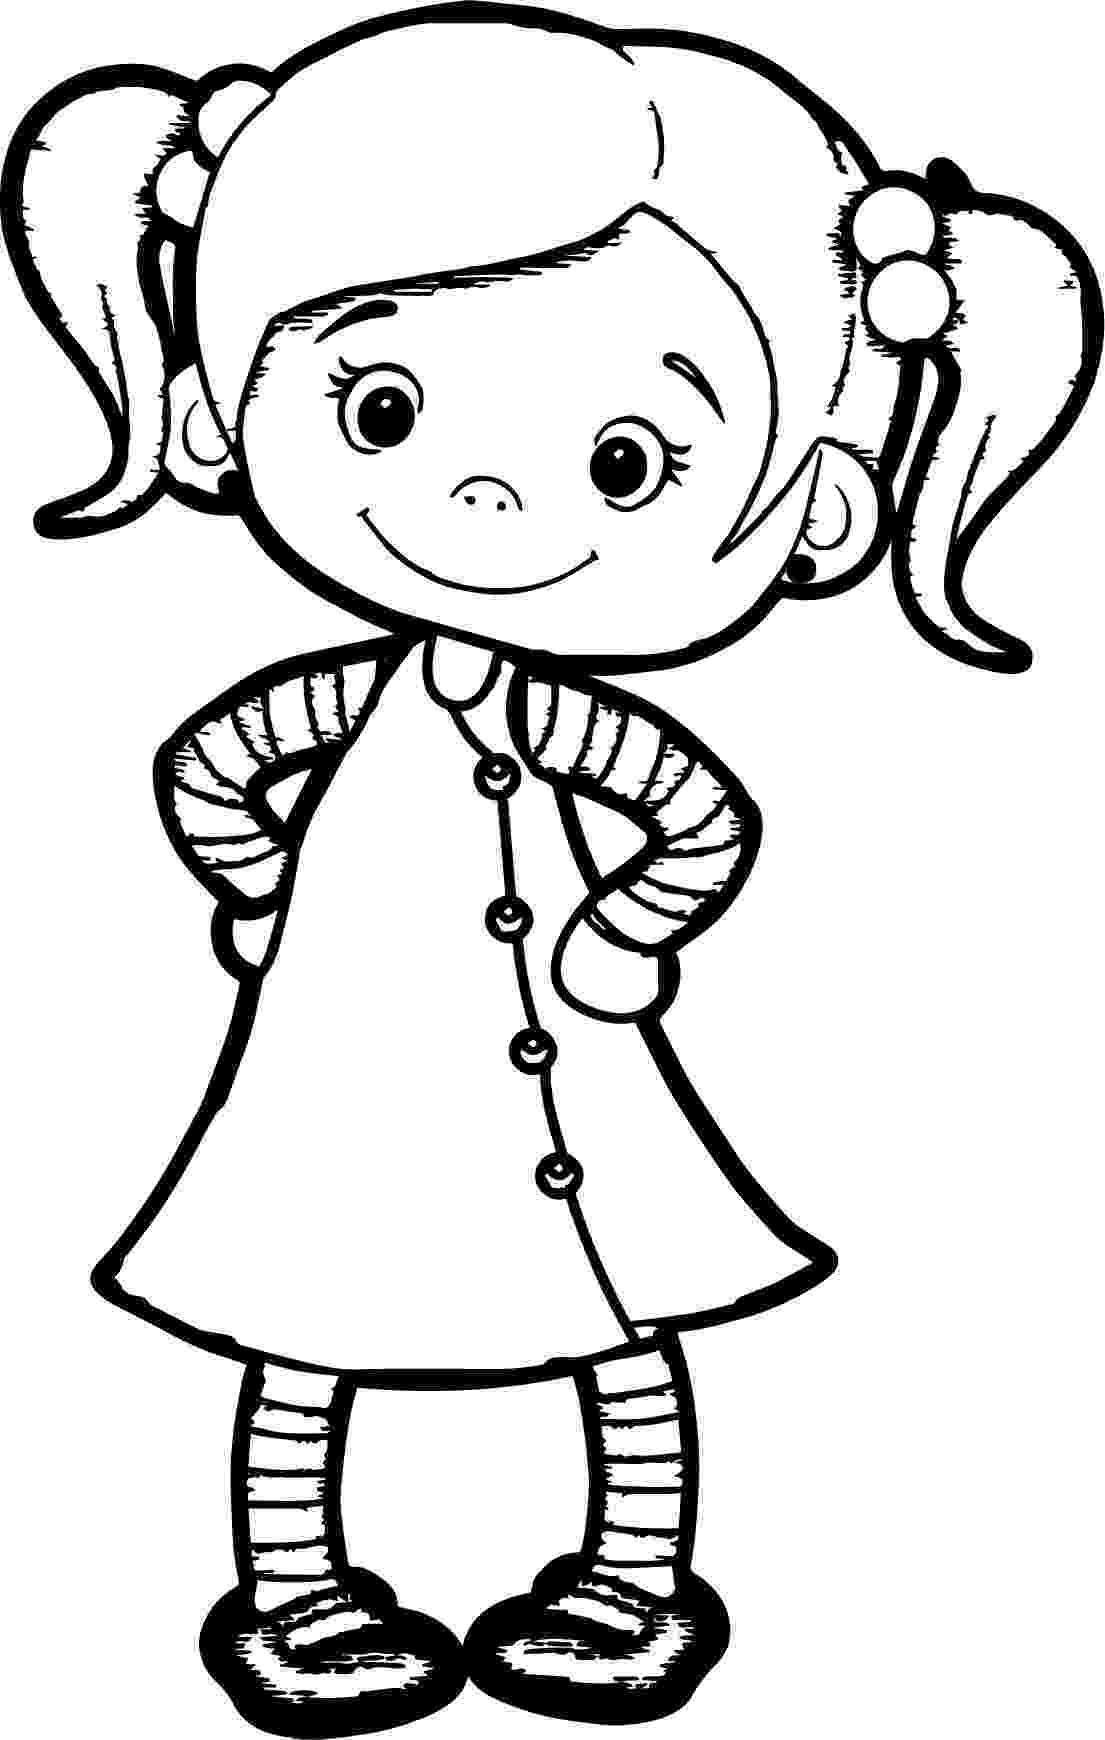 colouring pages to print for girls printable coloring pages for girls sarah titus pages to for colouring girls print